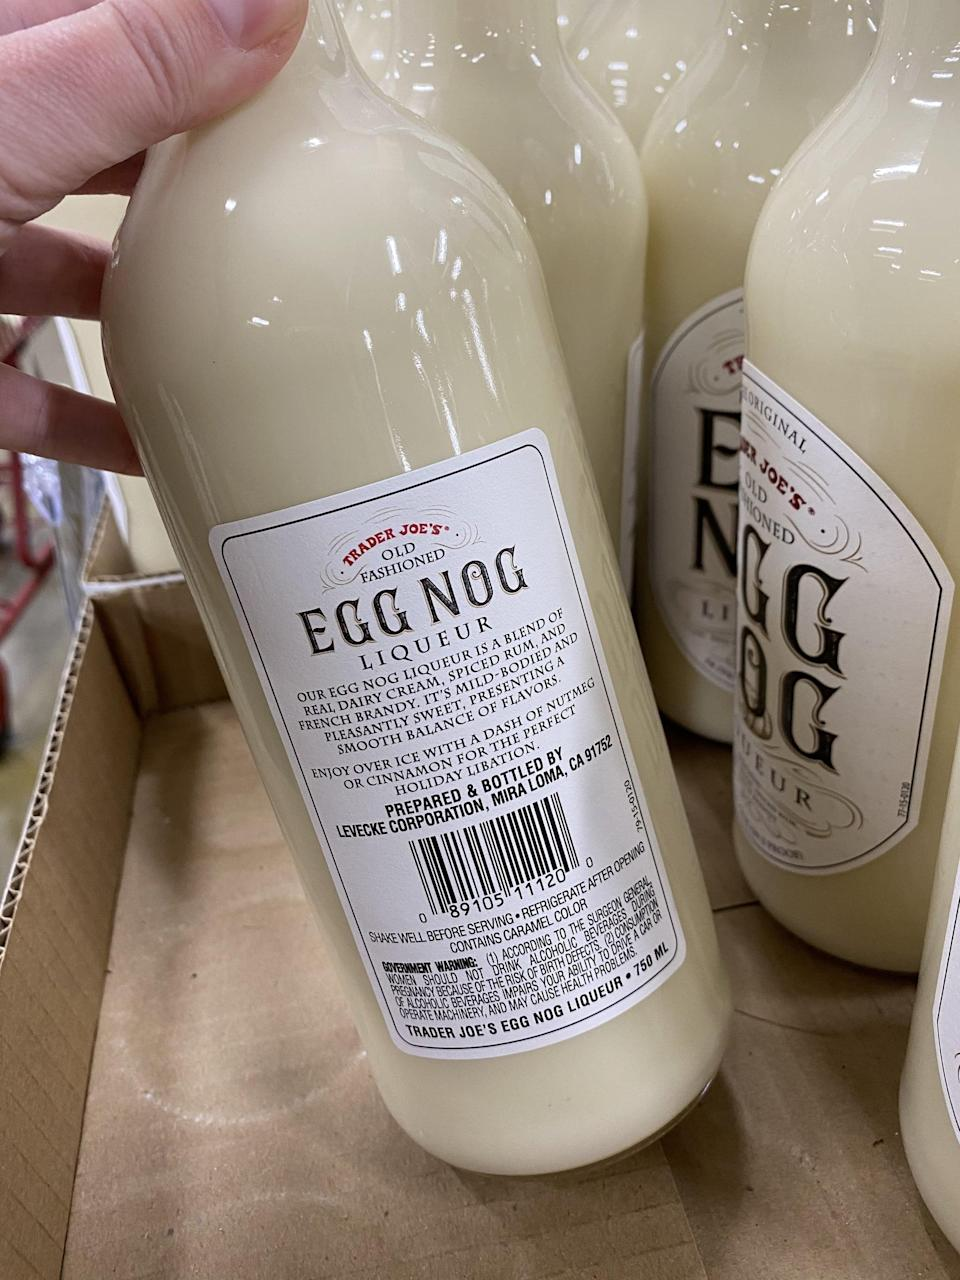 Trader Joe's Is Selling Bottles of Eggnog Liqueur For $8, So Cheers to That